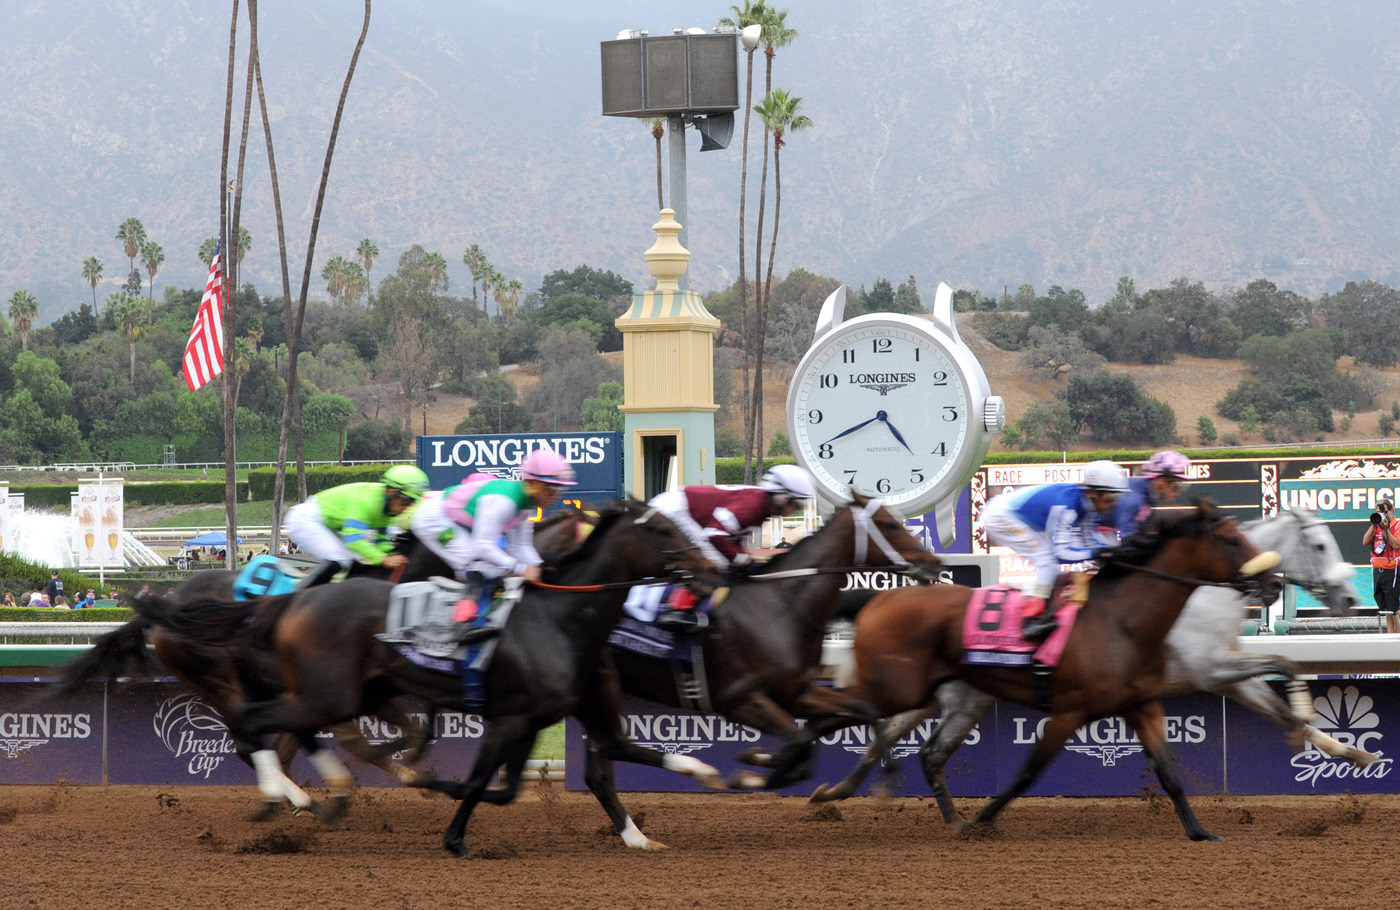 Longines Flat Racing Event: Longines Times the Breeders' Cup World Championships 4